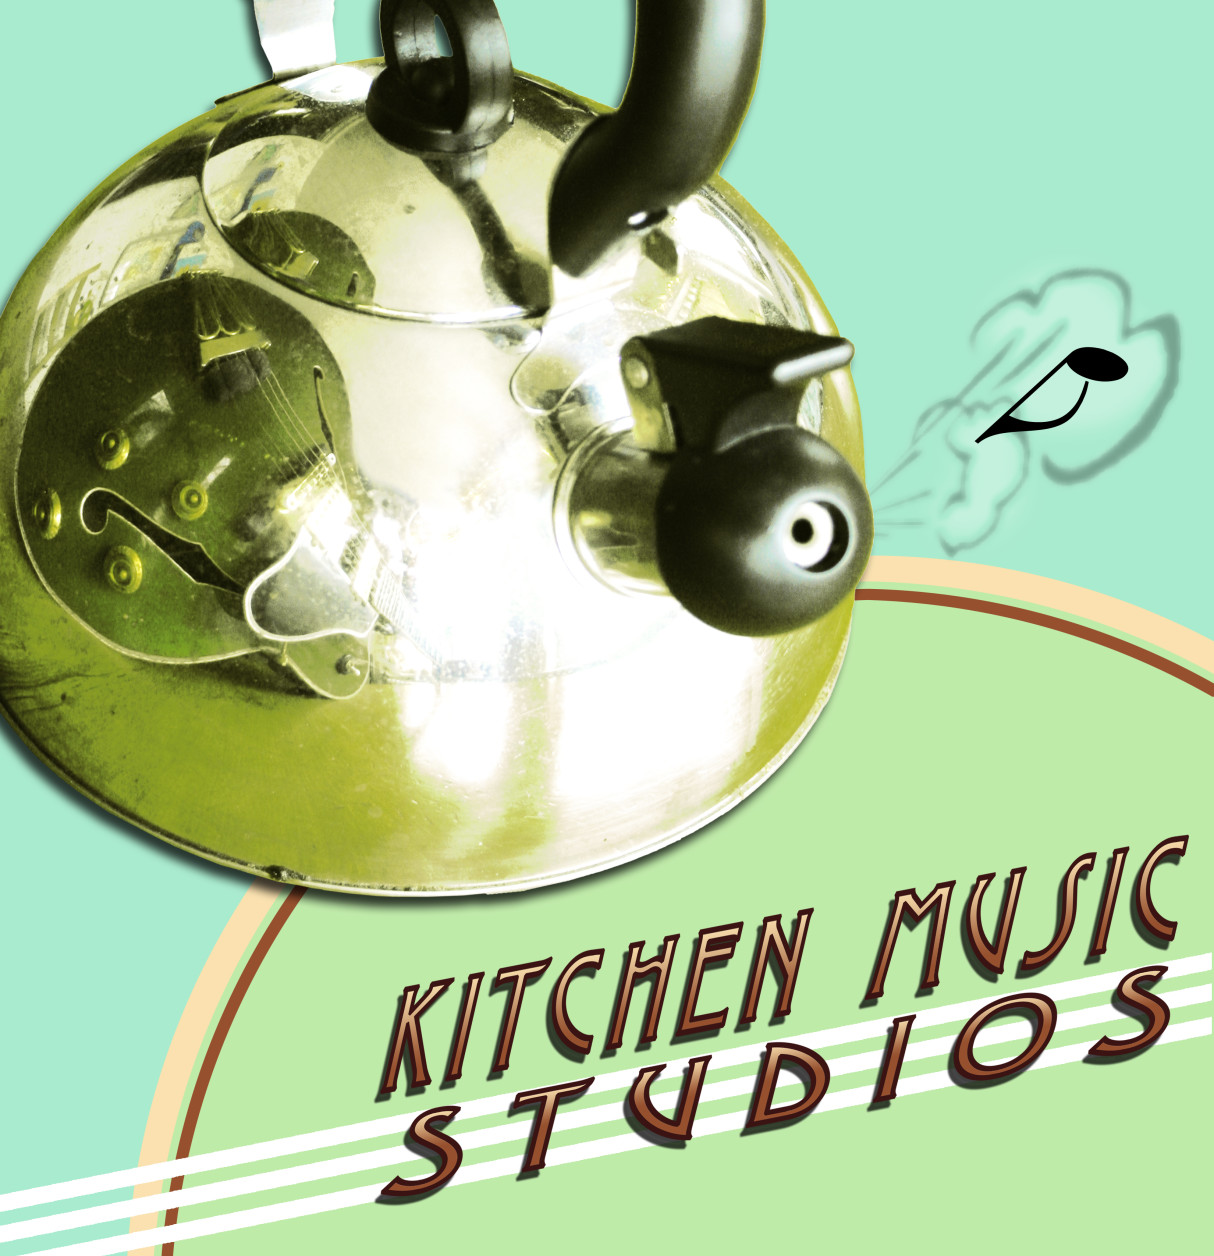 kitchenmusic